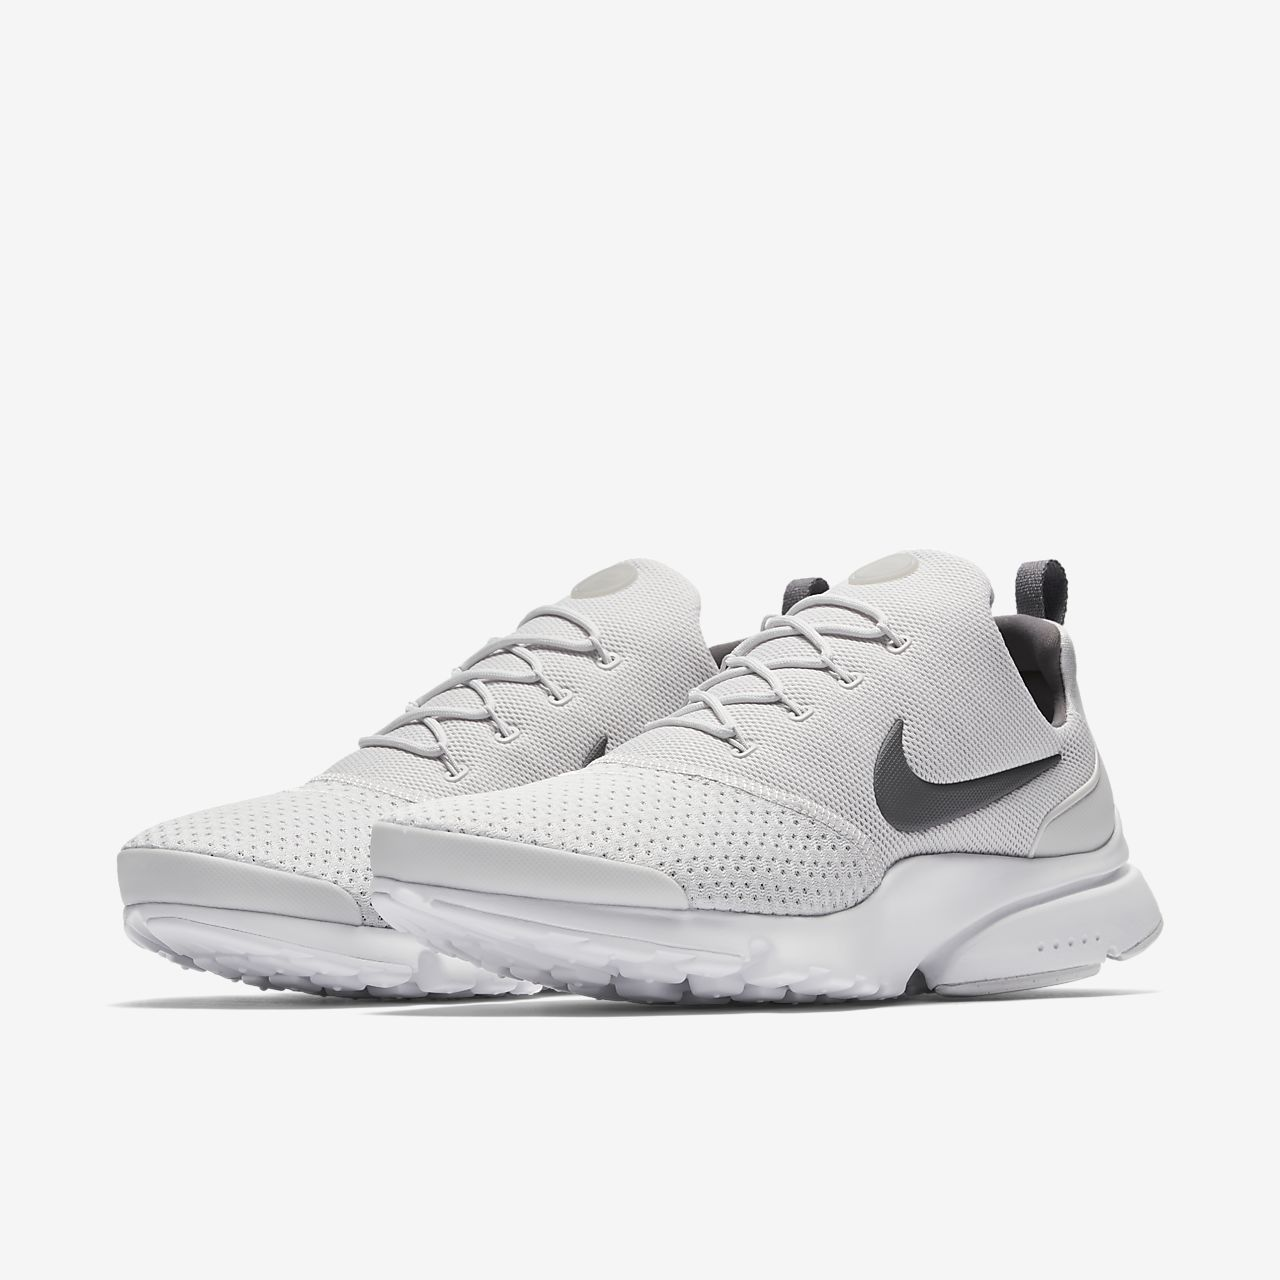 Presto Air Nike Chaussures Chaussures Fly SMzpUV